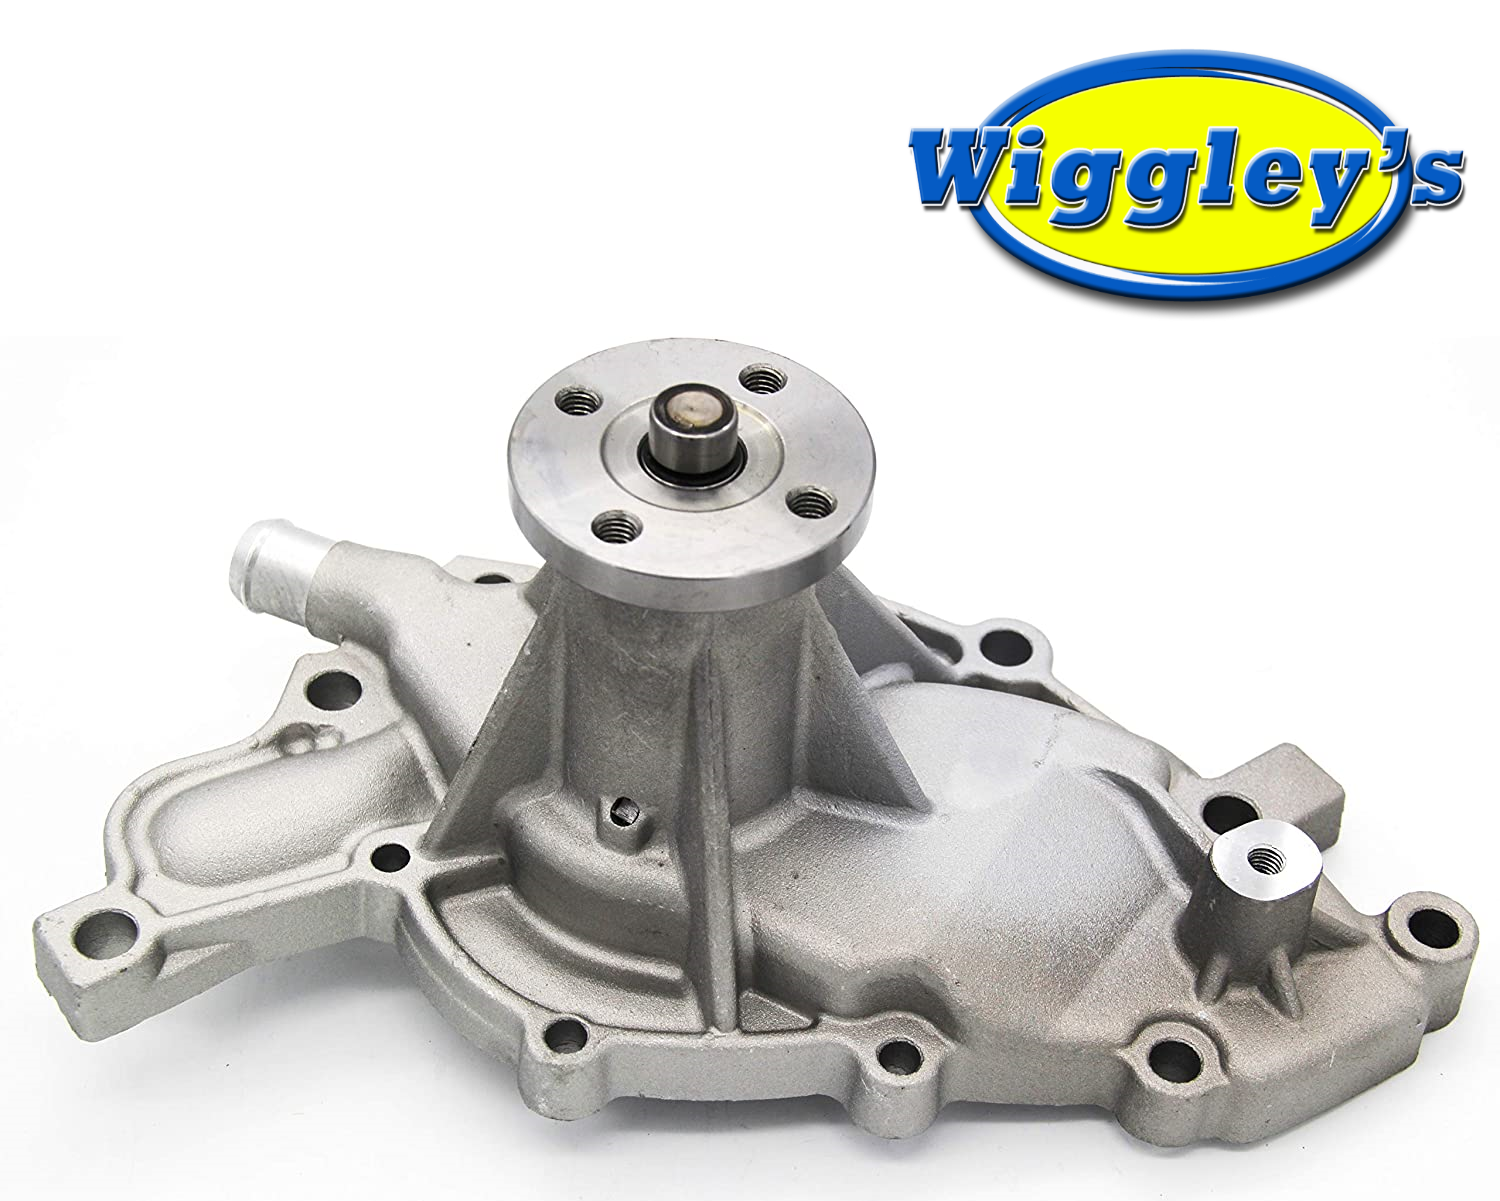 WATER PUMP WP1047 FOR 87-94 CHEVY GMC ISUZU 2.8L 3.1L OHV AW5035/43116/130-1720